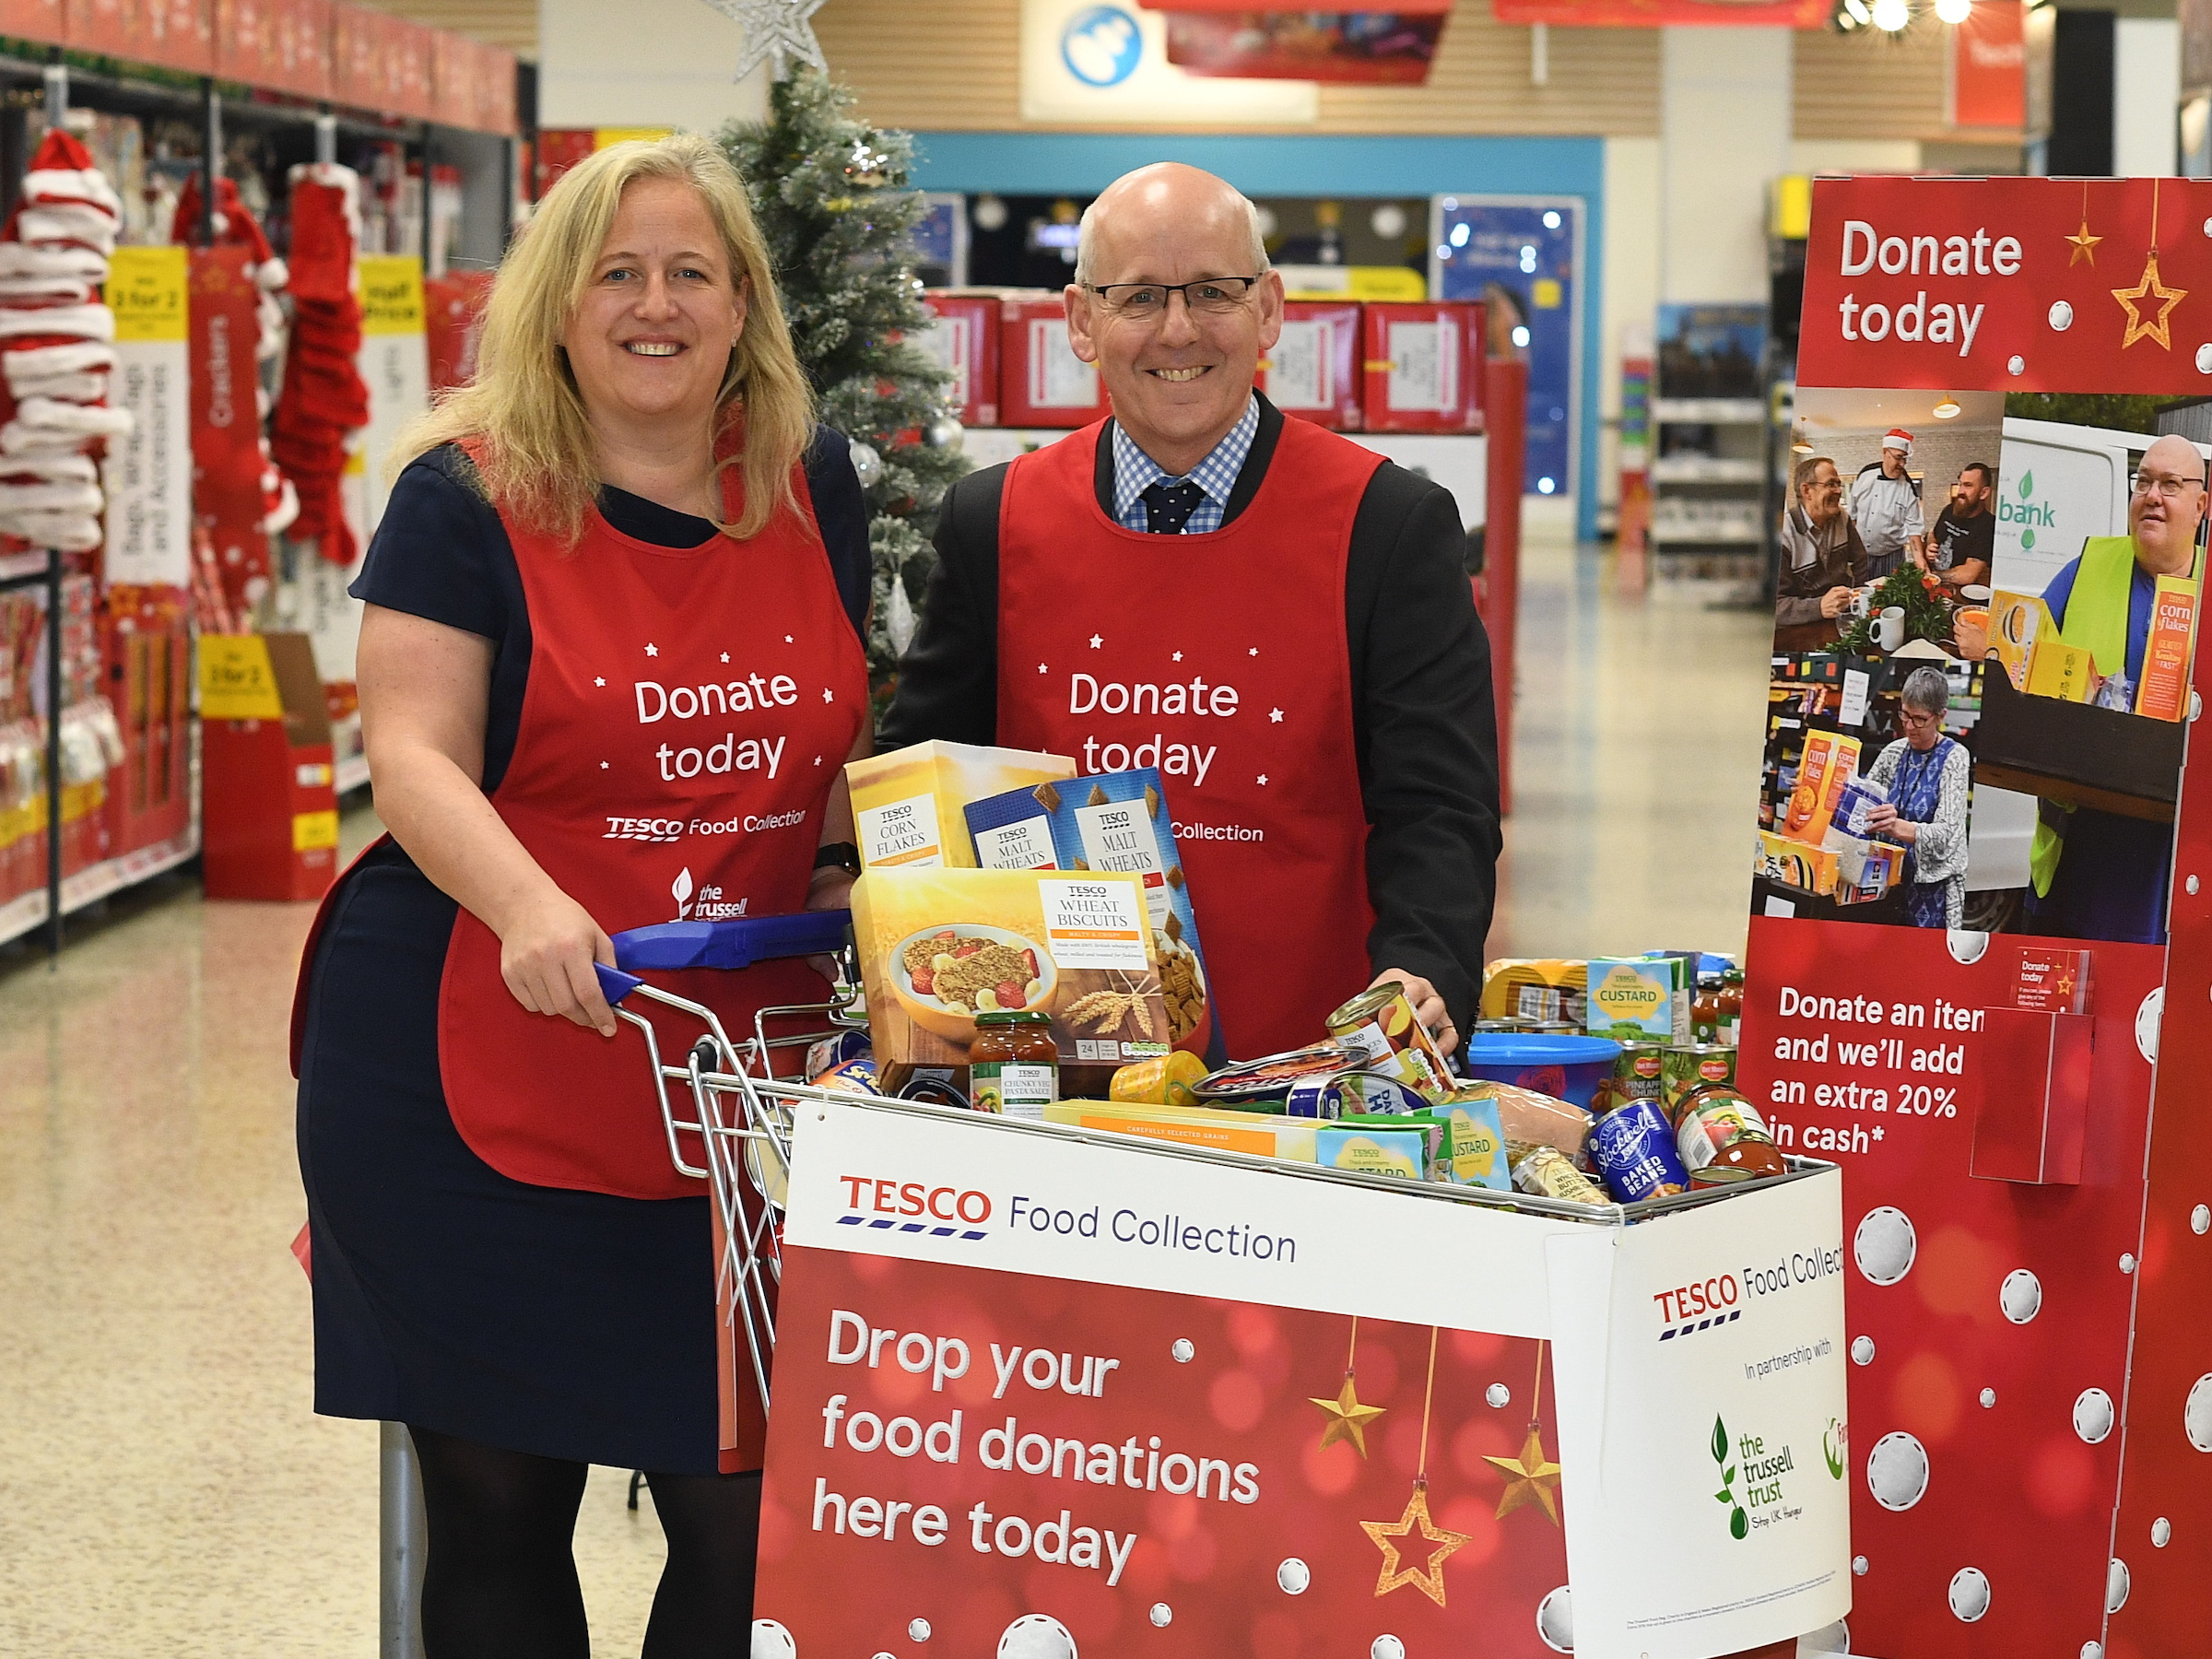 Emma Revie of The Trussell Trust and Lindsay Boswell of FareShare thanked generous shoppers for their donations.